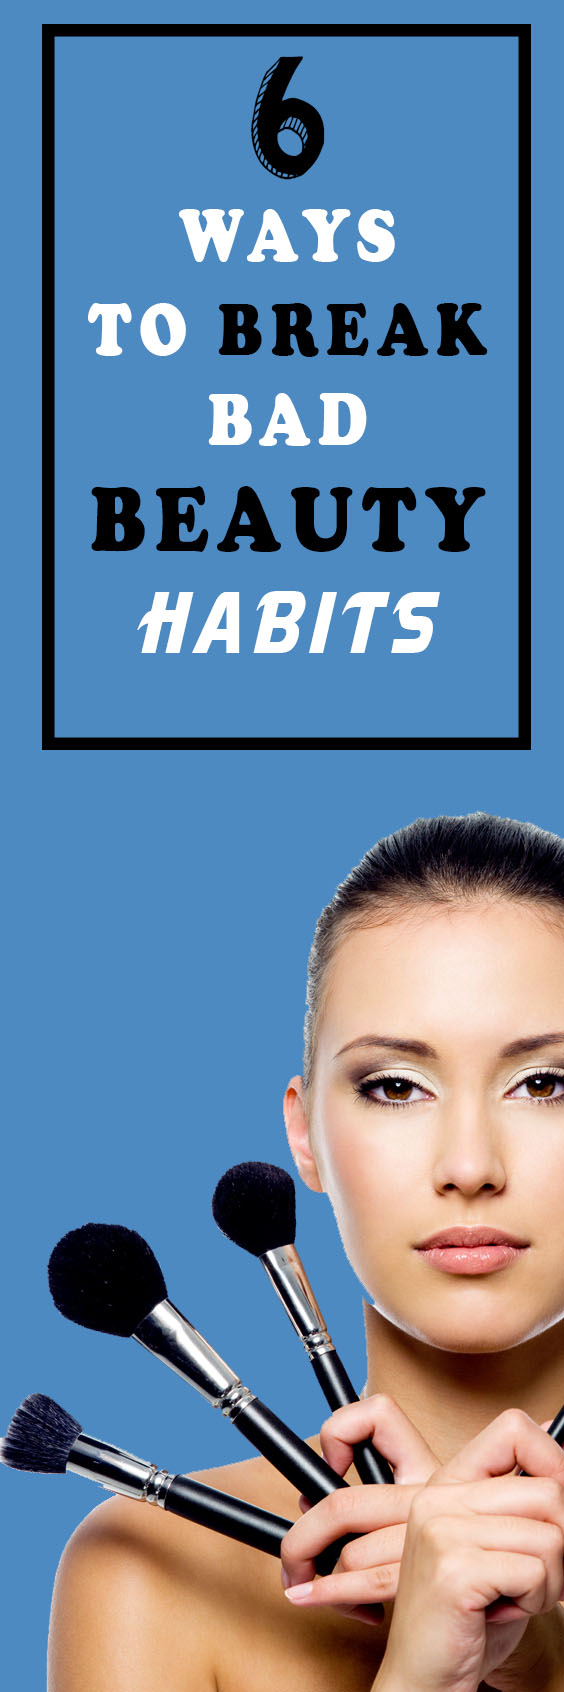 two way to break the bad habits